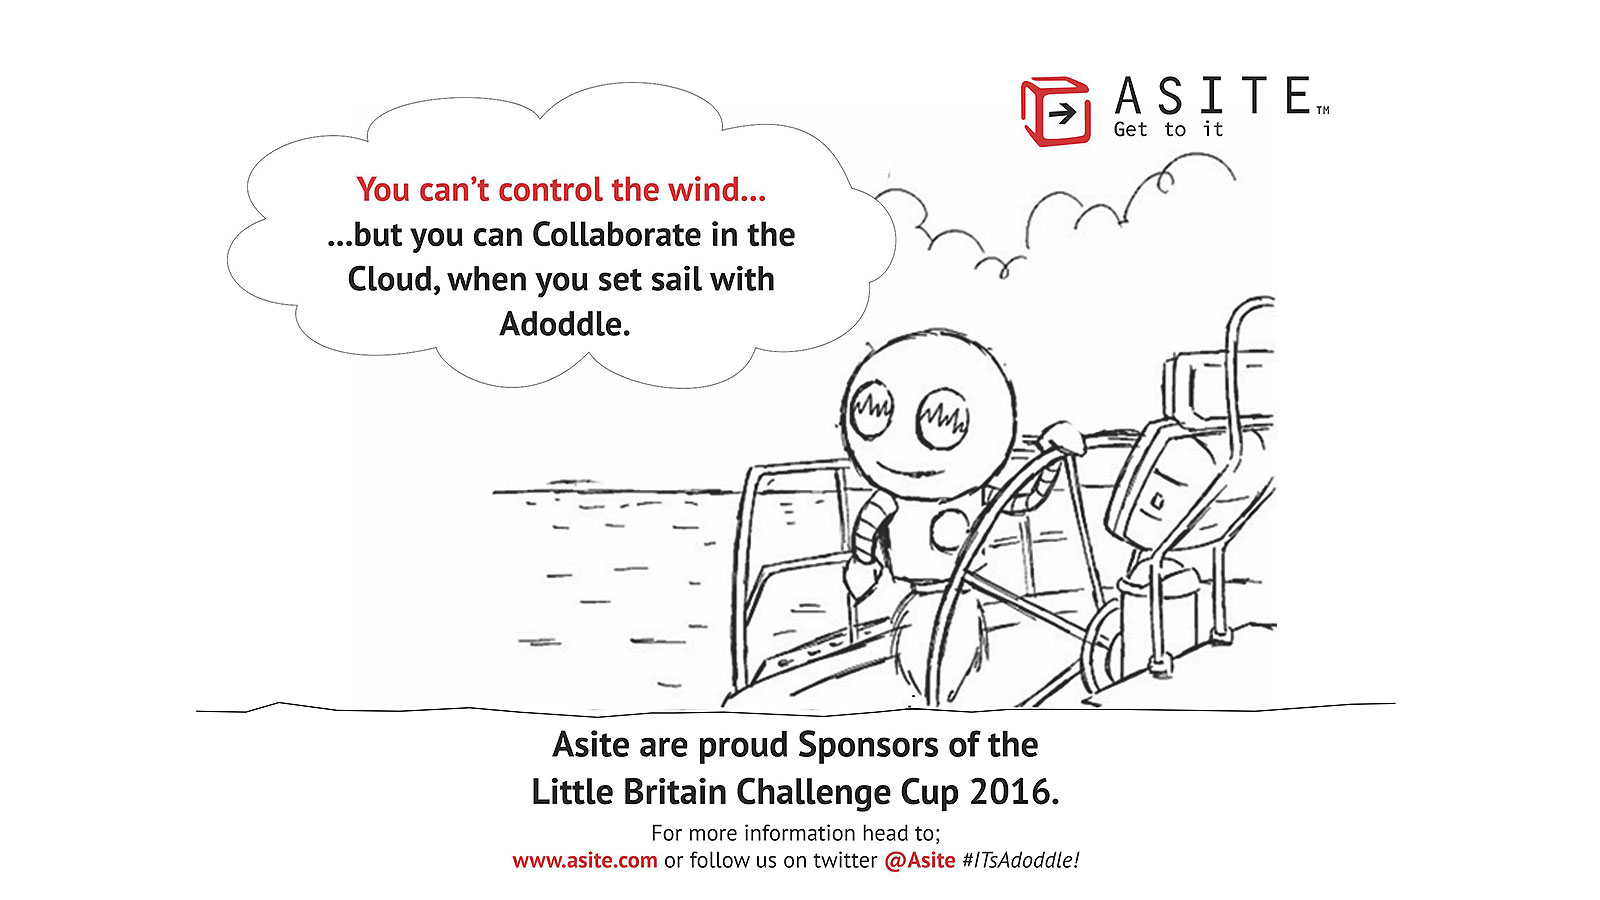 Asite are Silver Sponsors of The Little Britain Challenge cup for the 3rd year running.